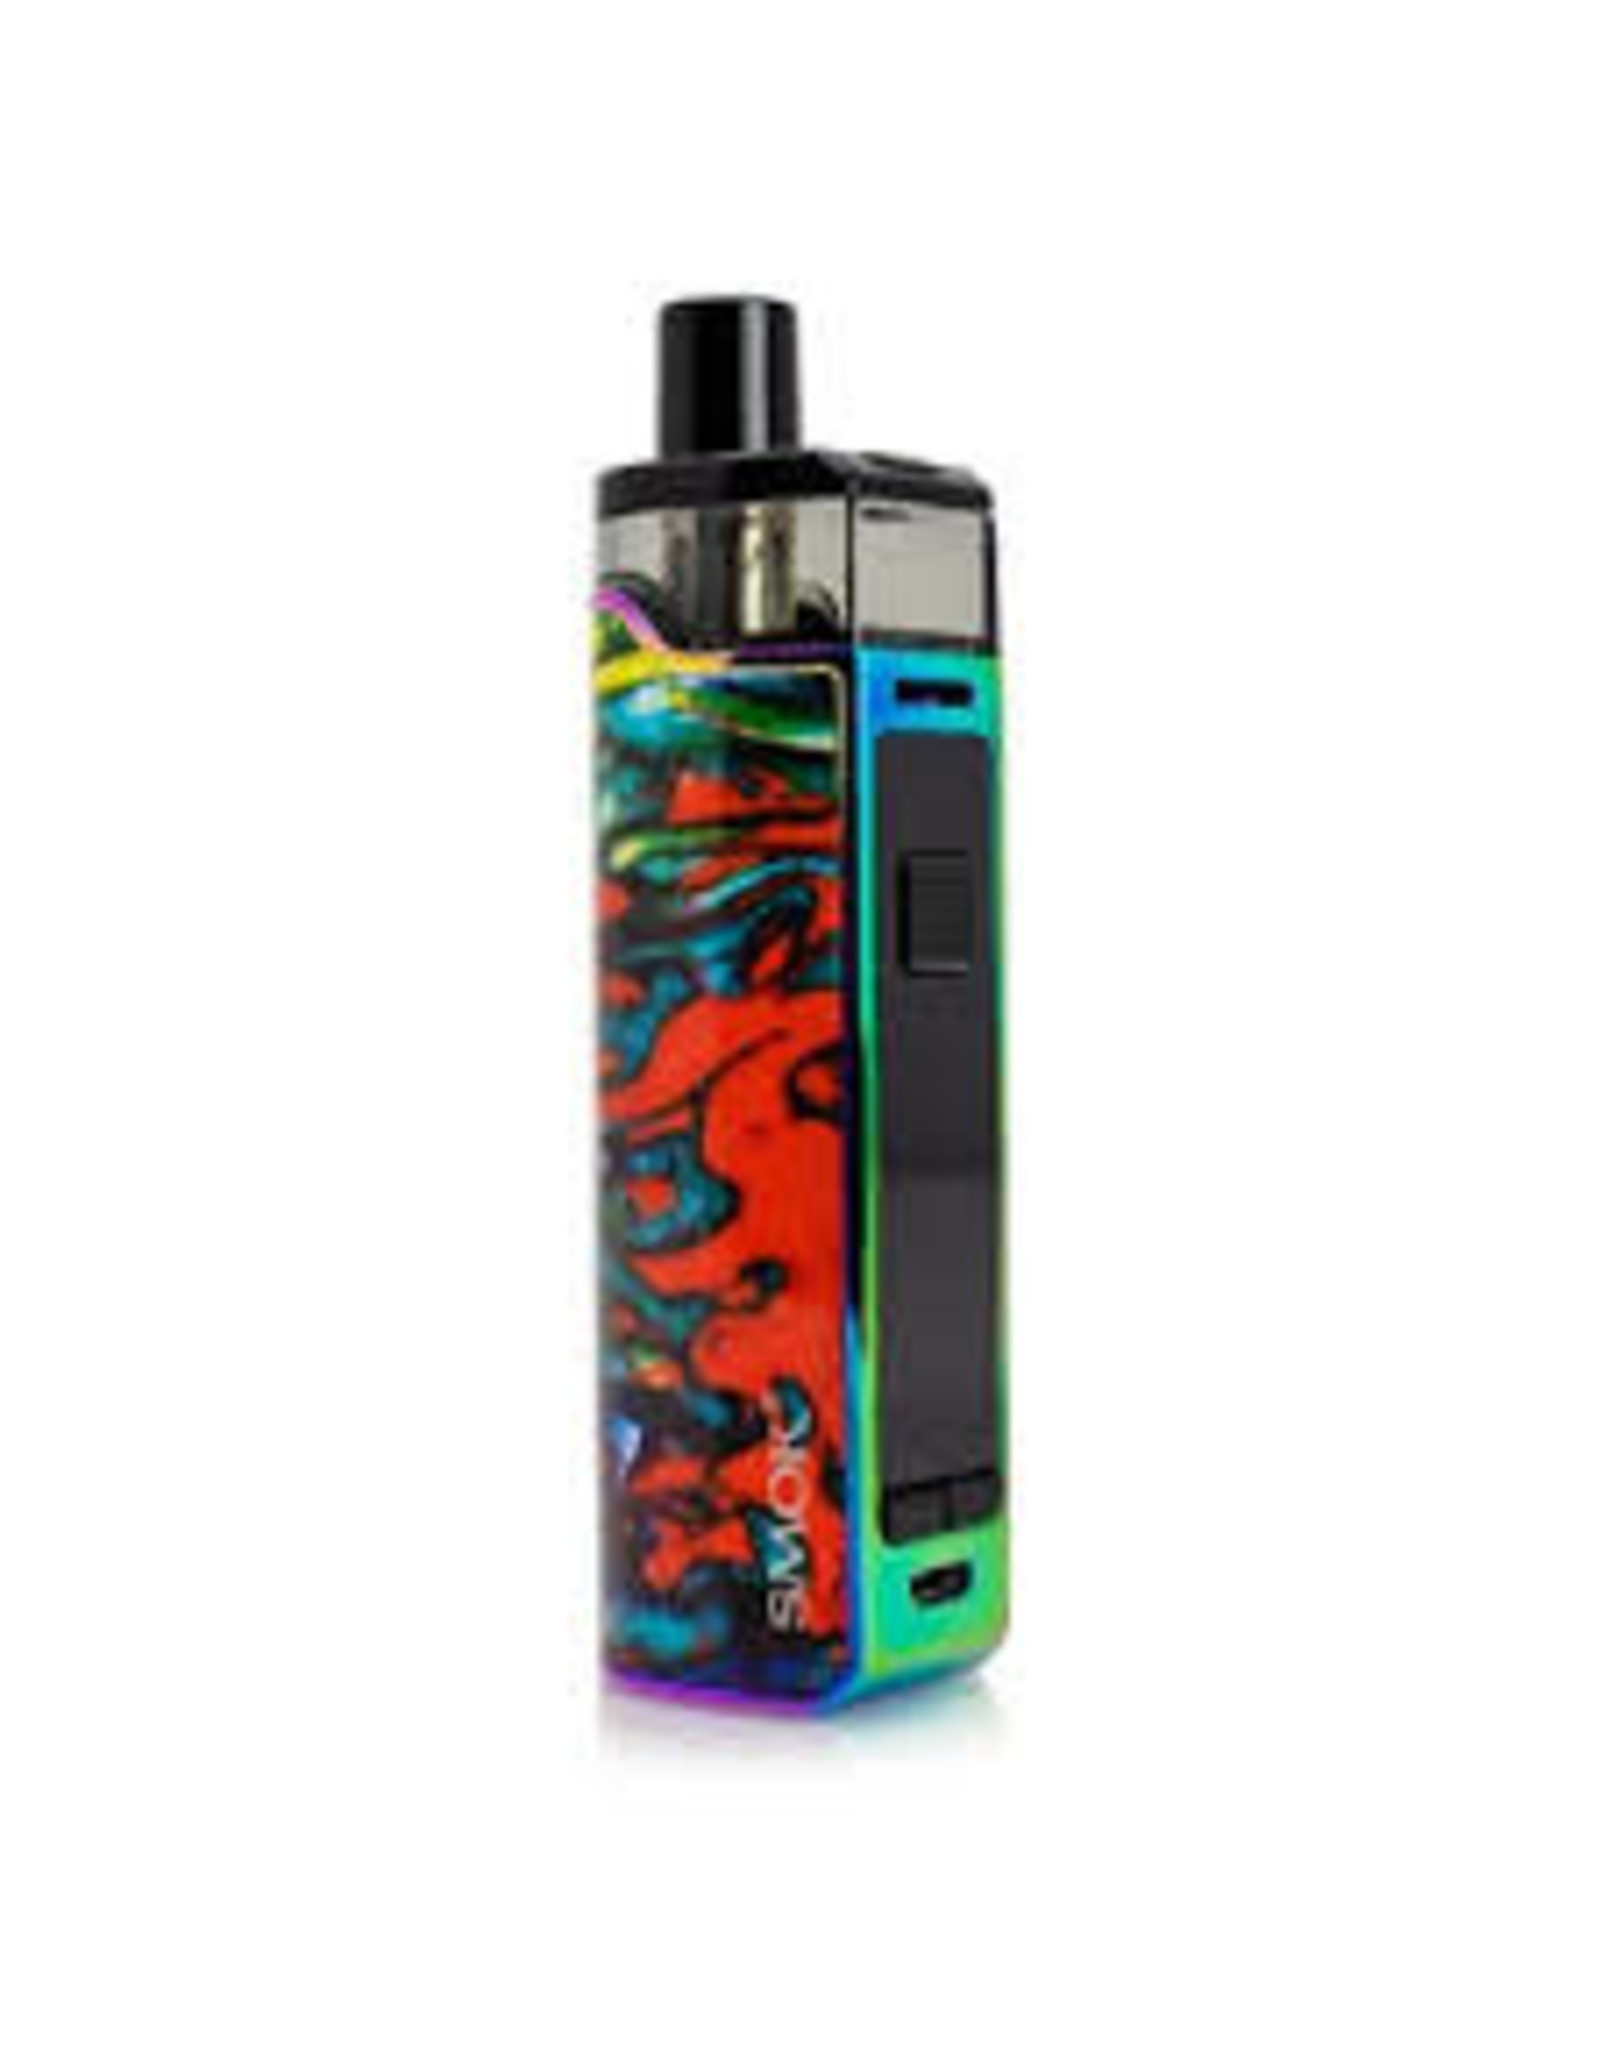 SMOK SMOK RPM 80 BUILT IN 3000MAH POD KIT